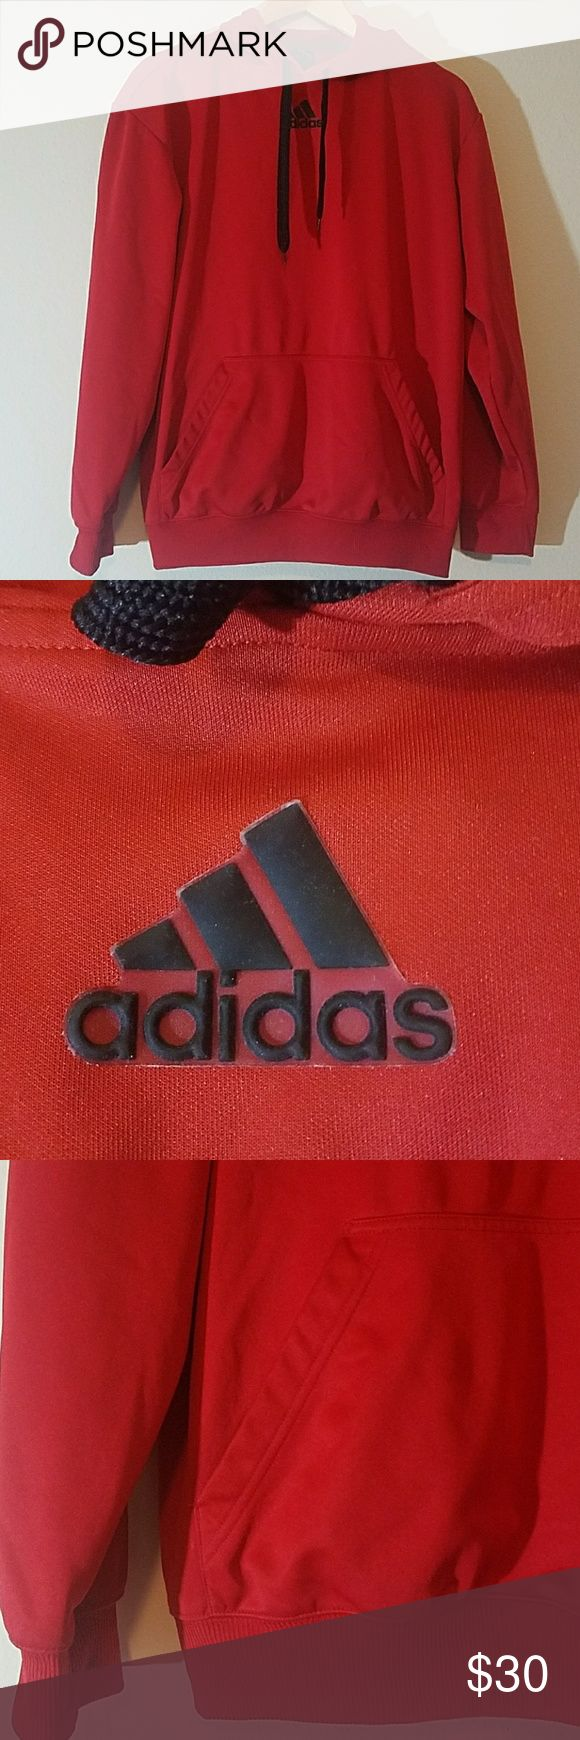 Adidas Hoodie Mens size Medium. Drawstring Hoodie. Front pocket. Front logo is a rubber applique. No stains or flaws. adidas Jackets & Coats Performance Jackets